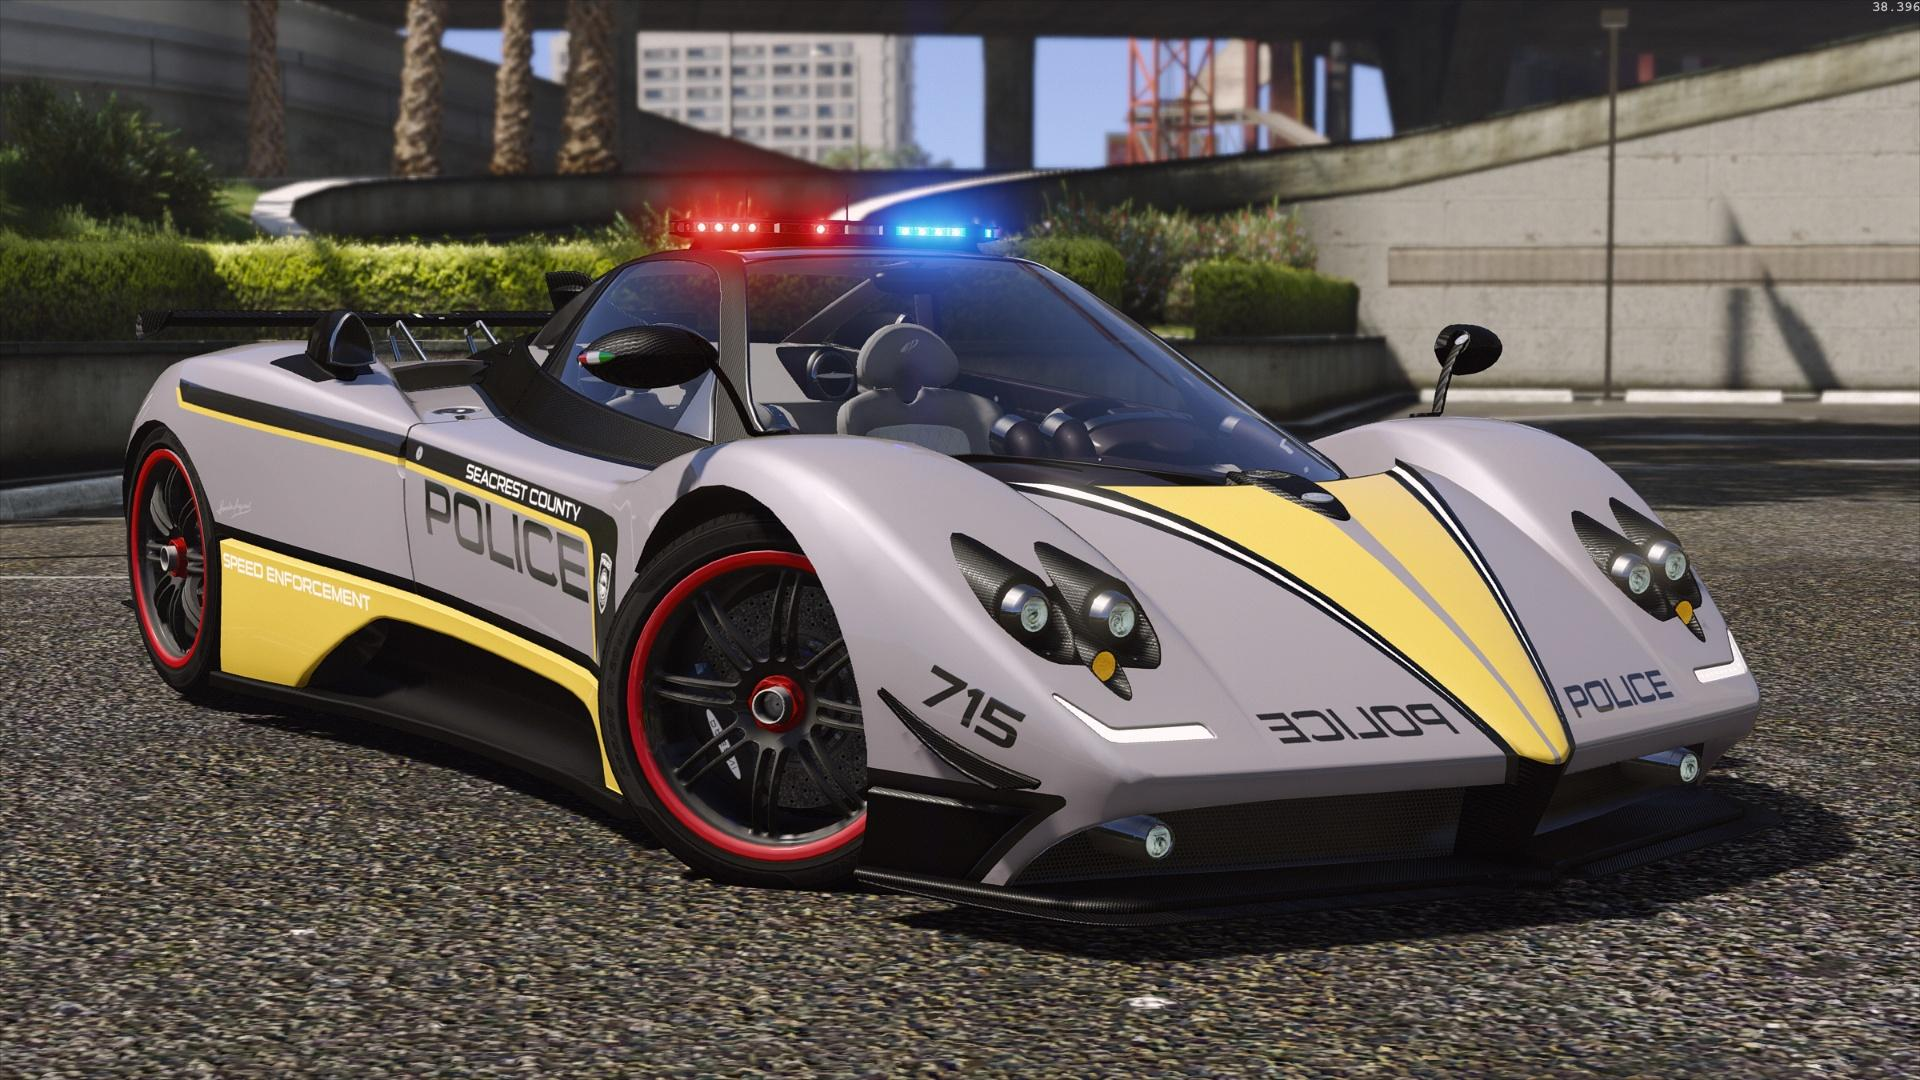 Nissan 2017 Gtr Track Edition together with Pagani Zonda Tricolore Hot Pursuit Police Add On Replace Template furthermore Watch besides Would You Pay 100k For Ford Mustang also Aston Martin 2019 Vantage. on ford gt wallpaper